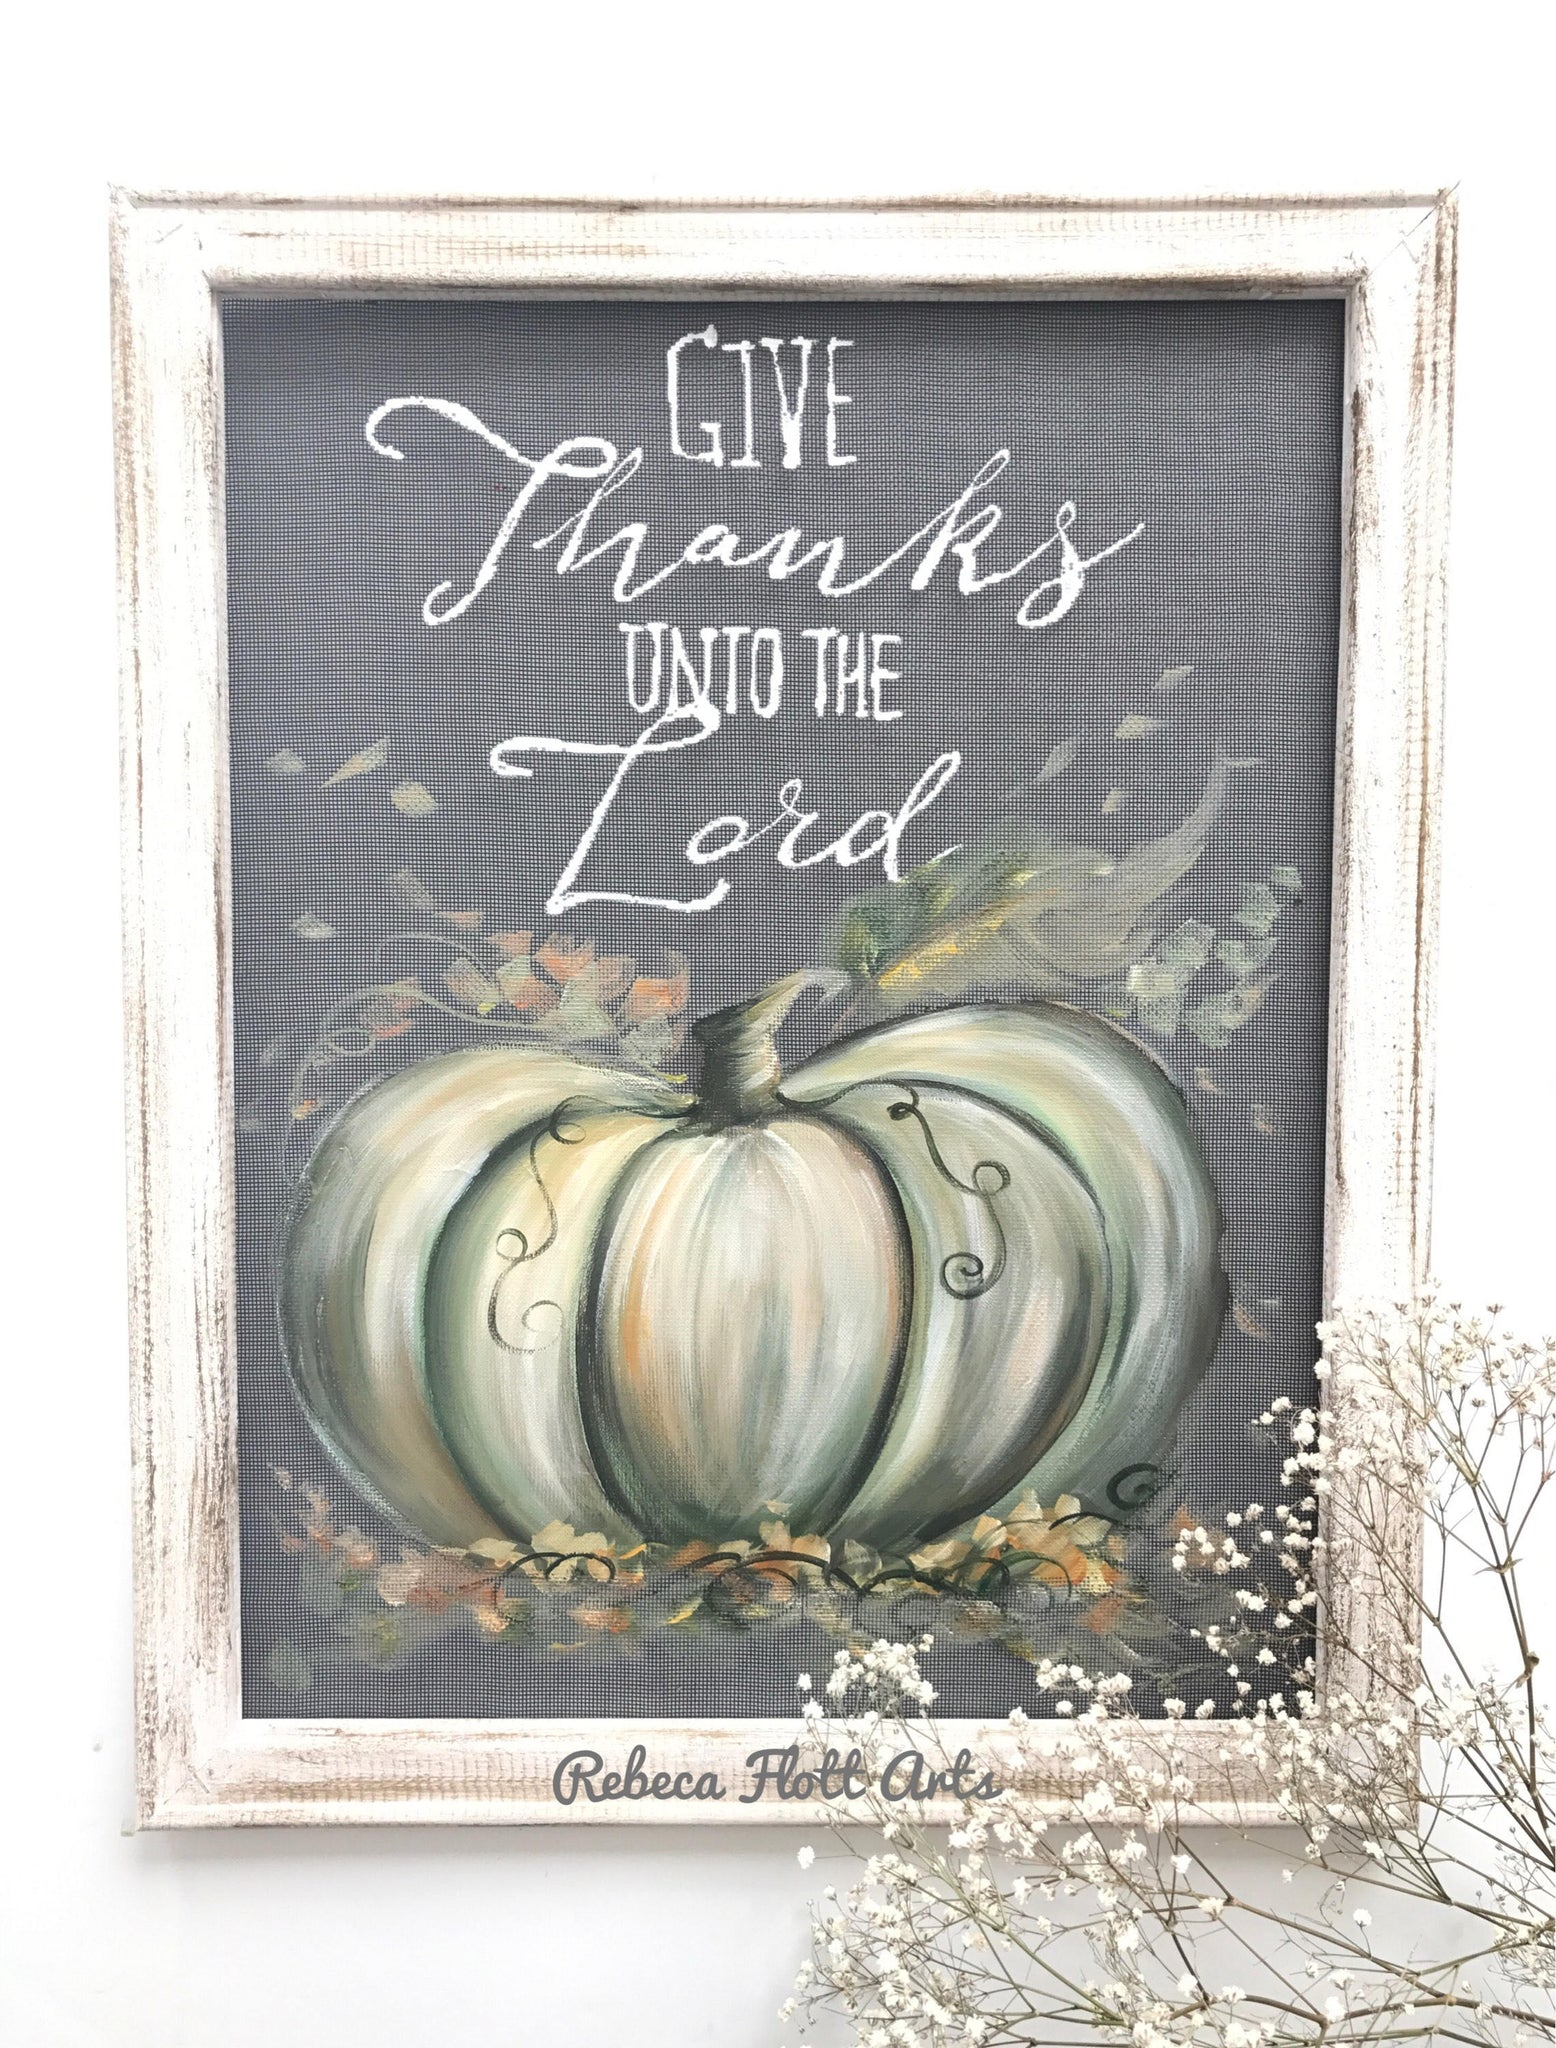 Give thanks, New gorgeous item cinderella pumpkin perfect for your farmhouse decor